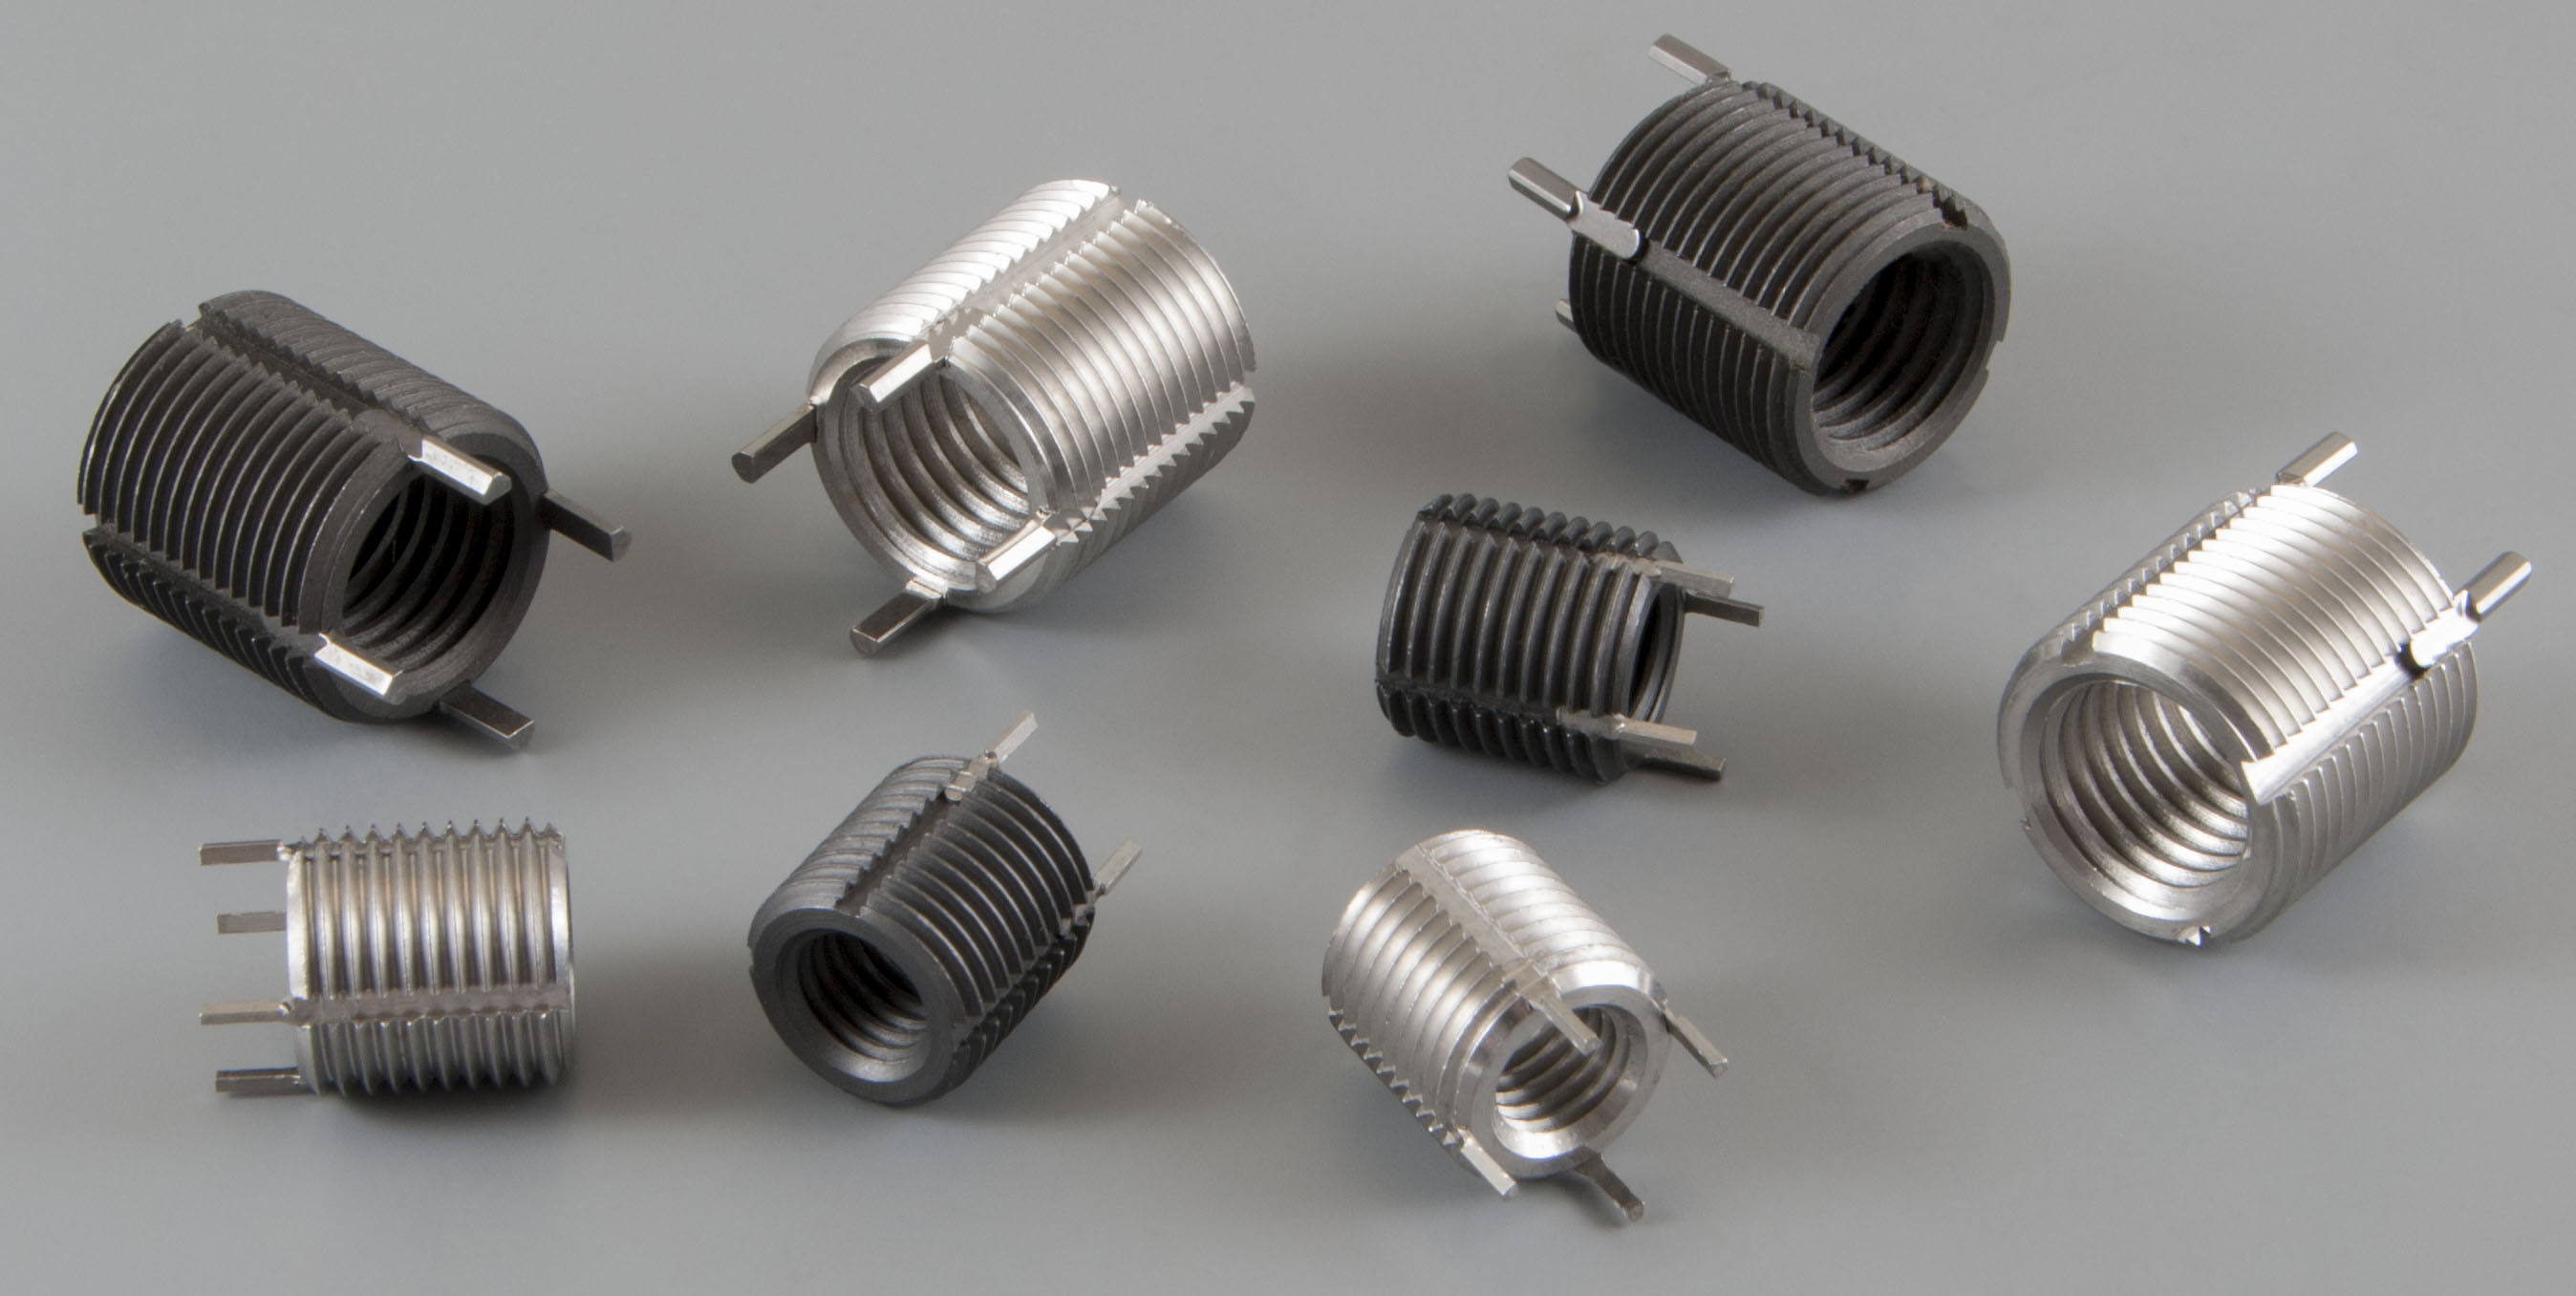 Thread repair kits and threaded inserts